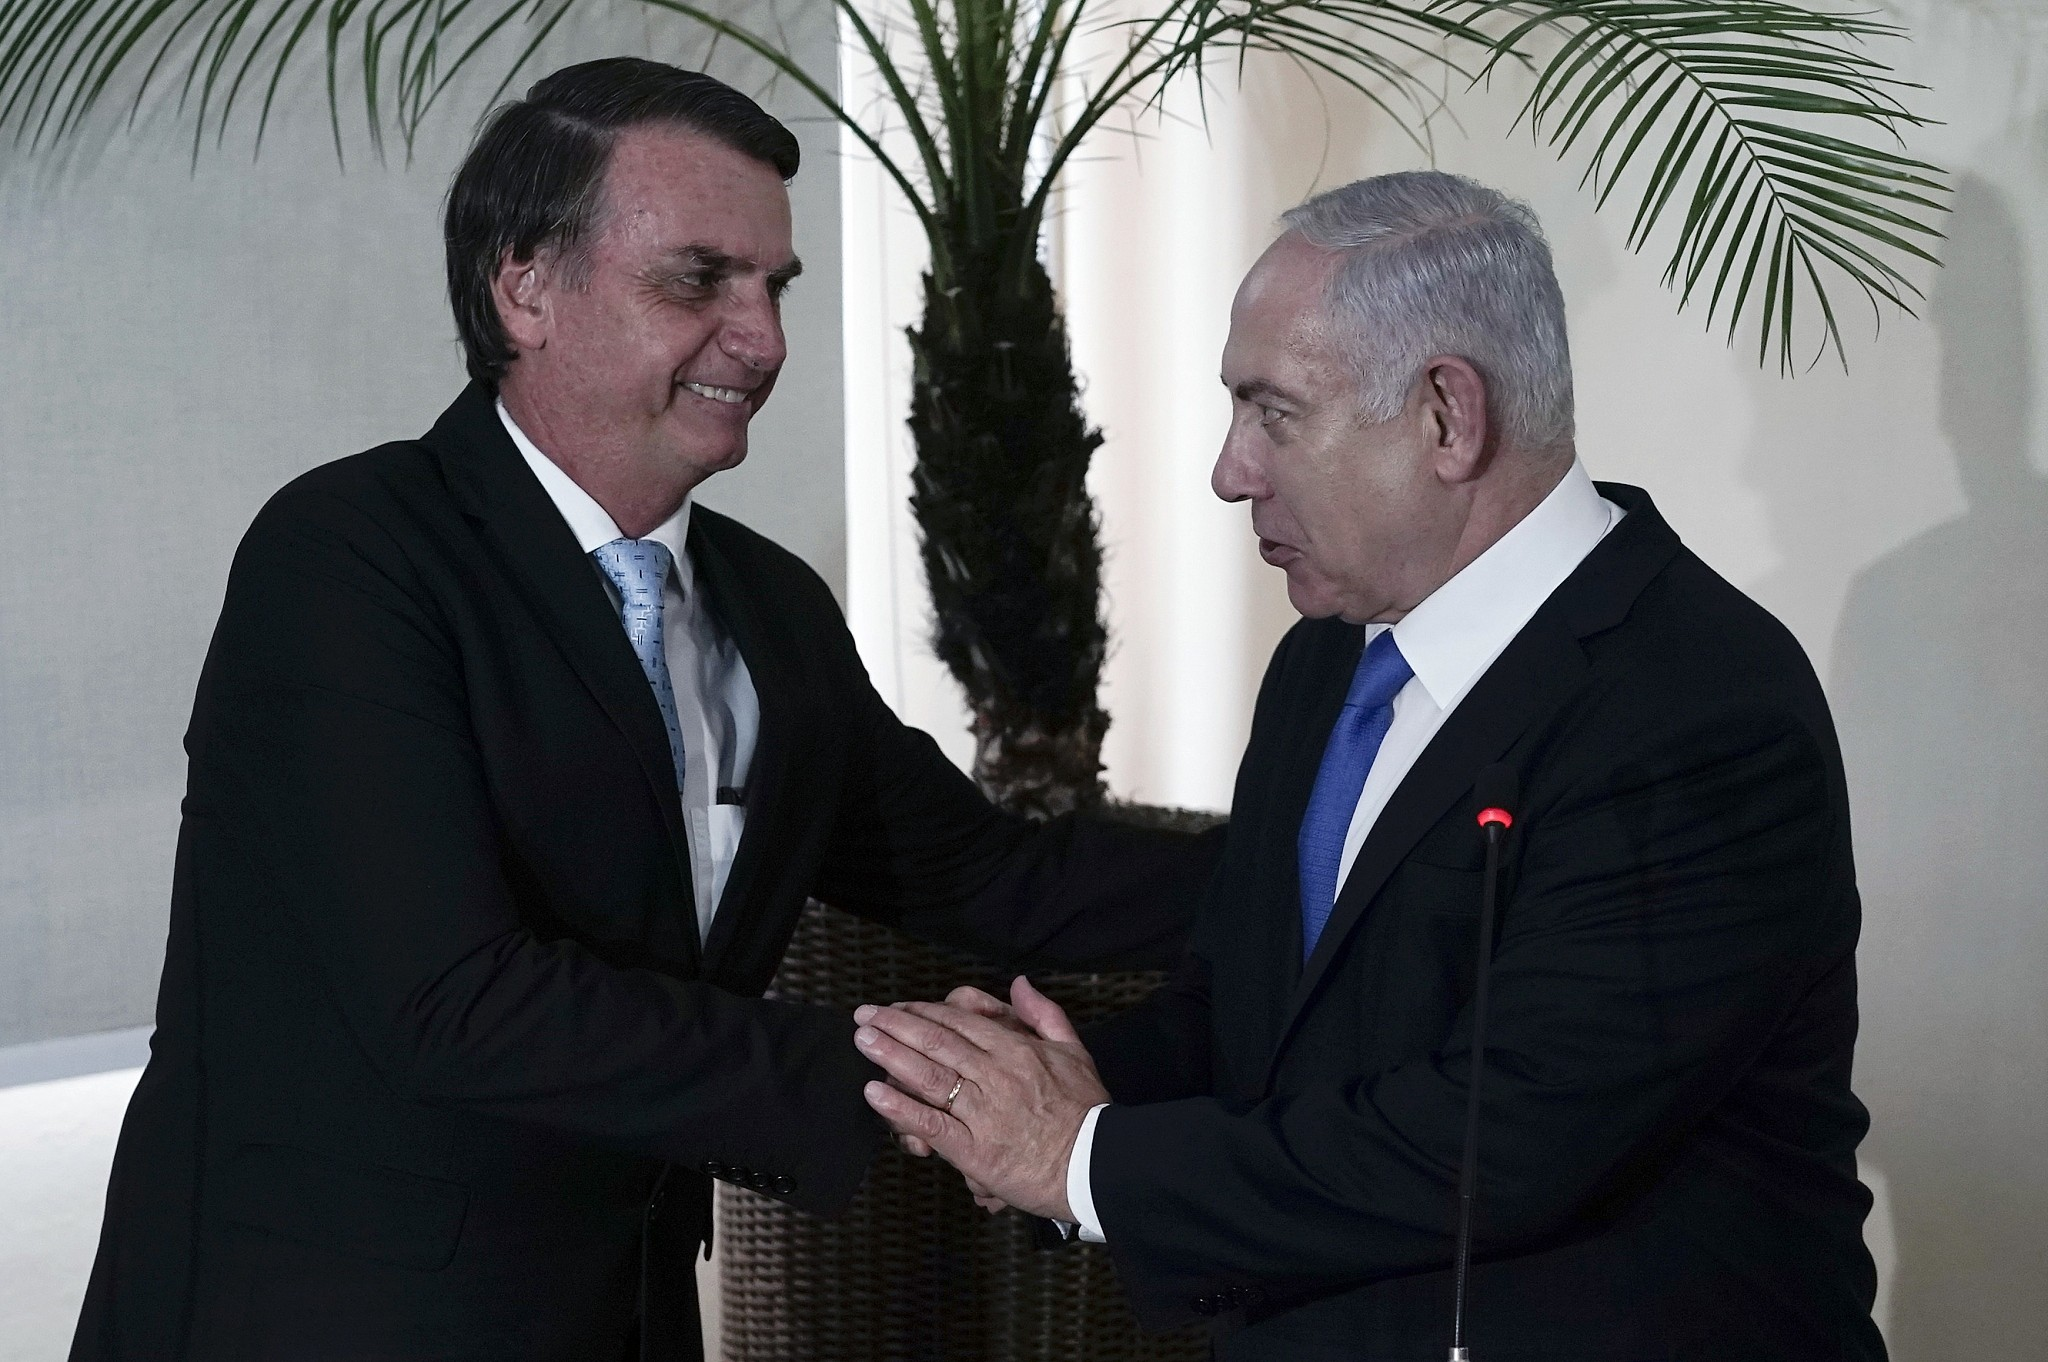 Israeli PM visits Brazil ahead of Bolsonaro inauguration